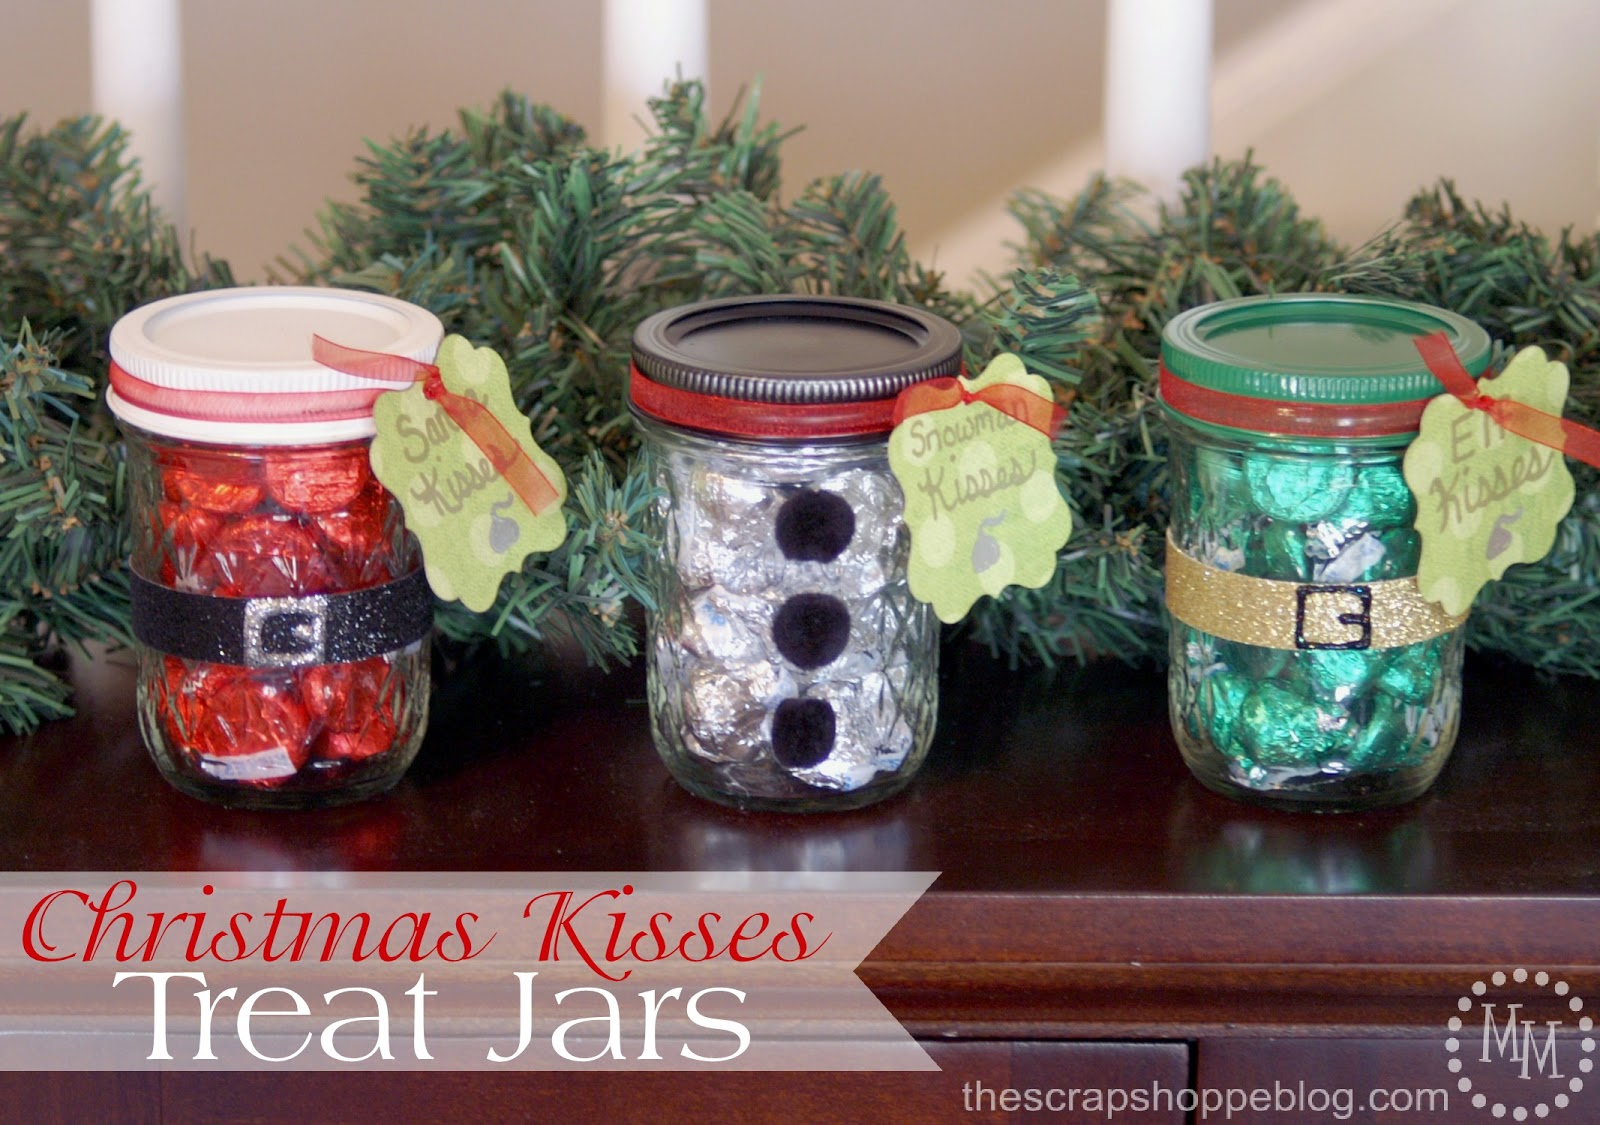 Crafts Using Hershey Kisses | December 5, 2012 By Michele McDonald 29 ...